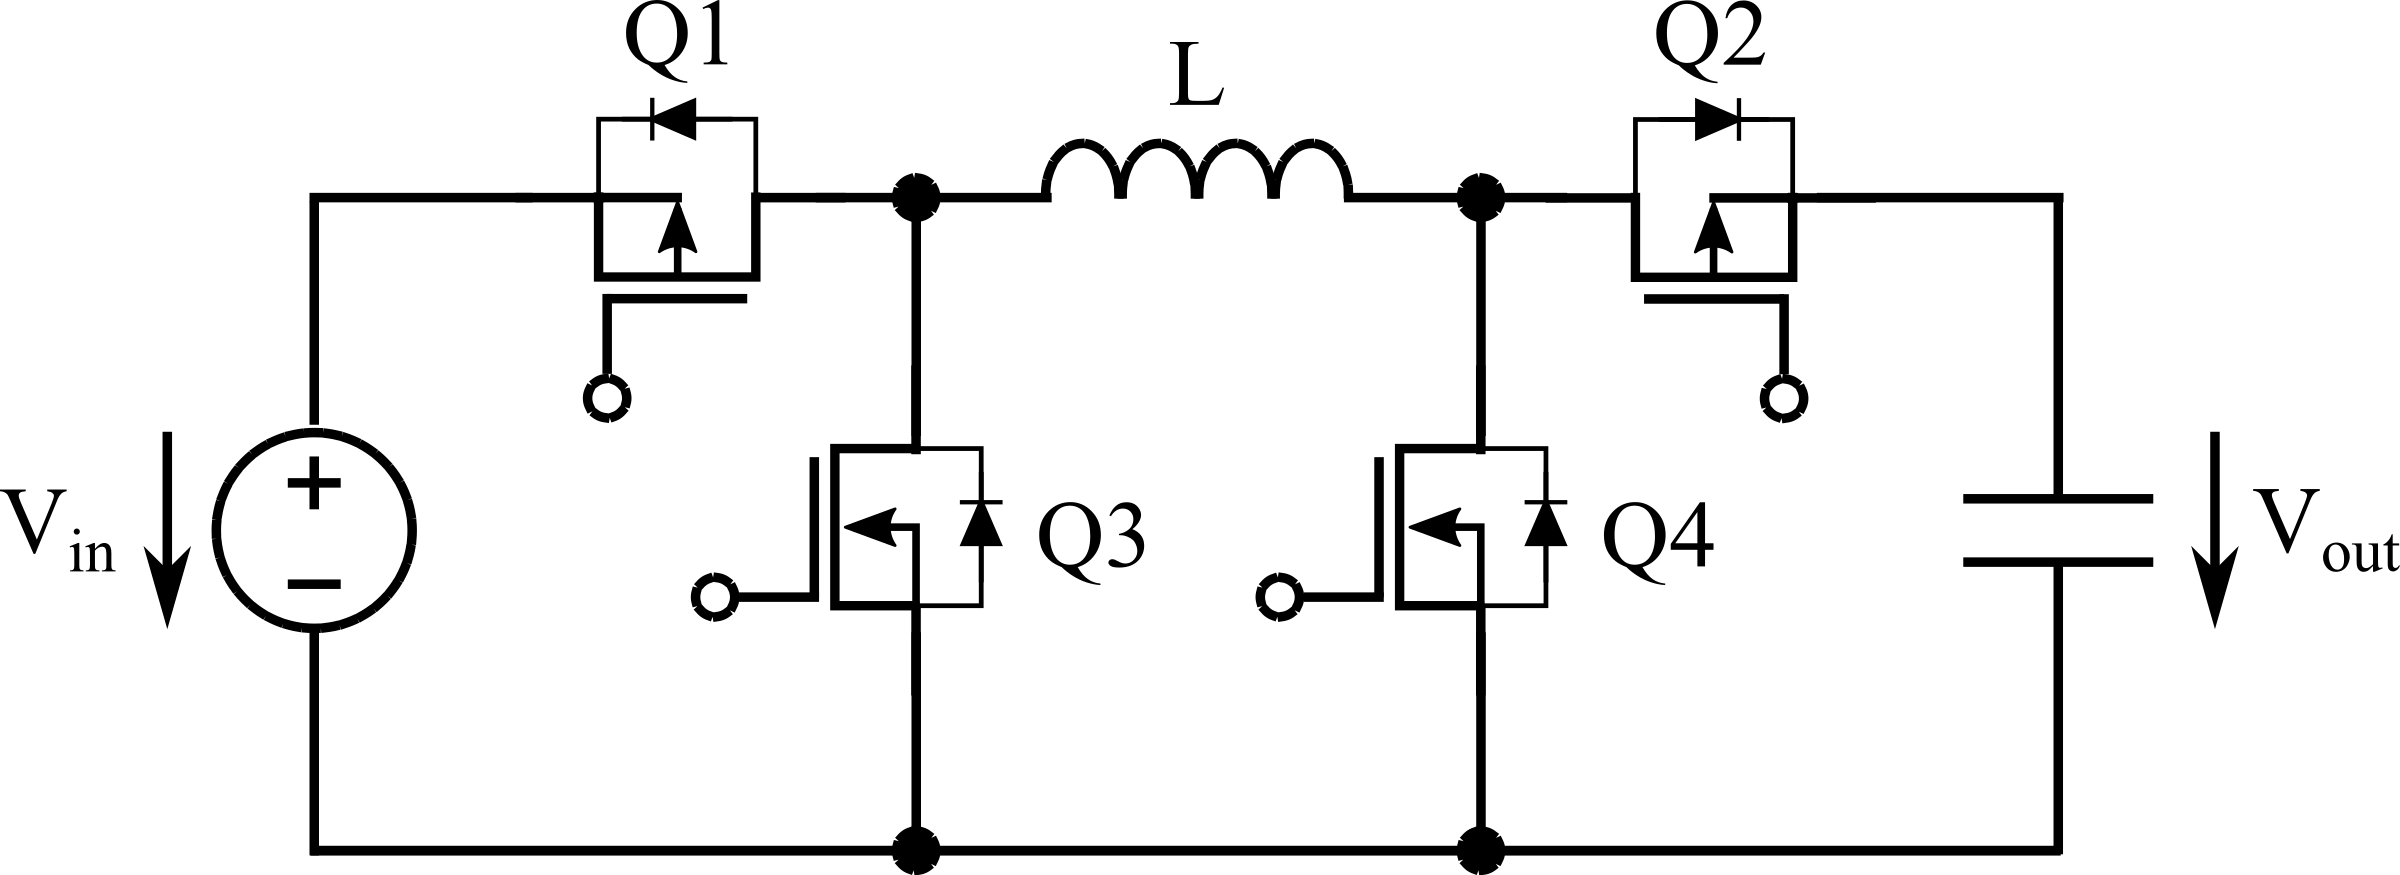 circuit diagram of buck boost converter fender fat strat wiring clipart 4 switch